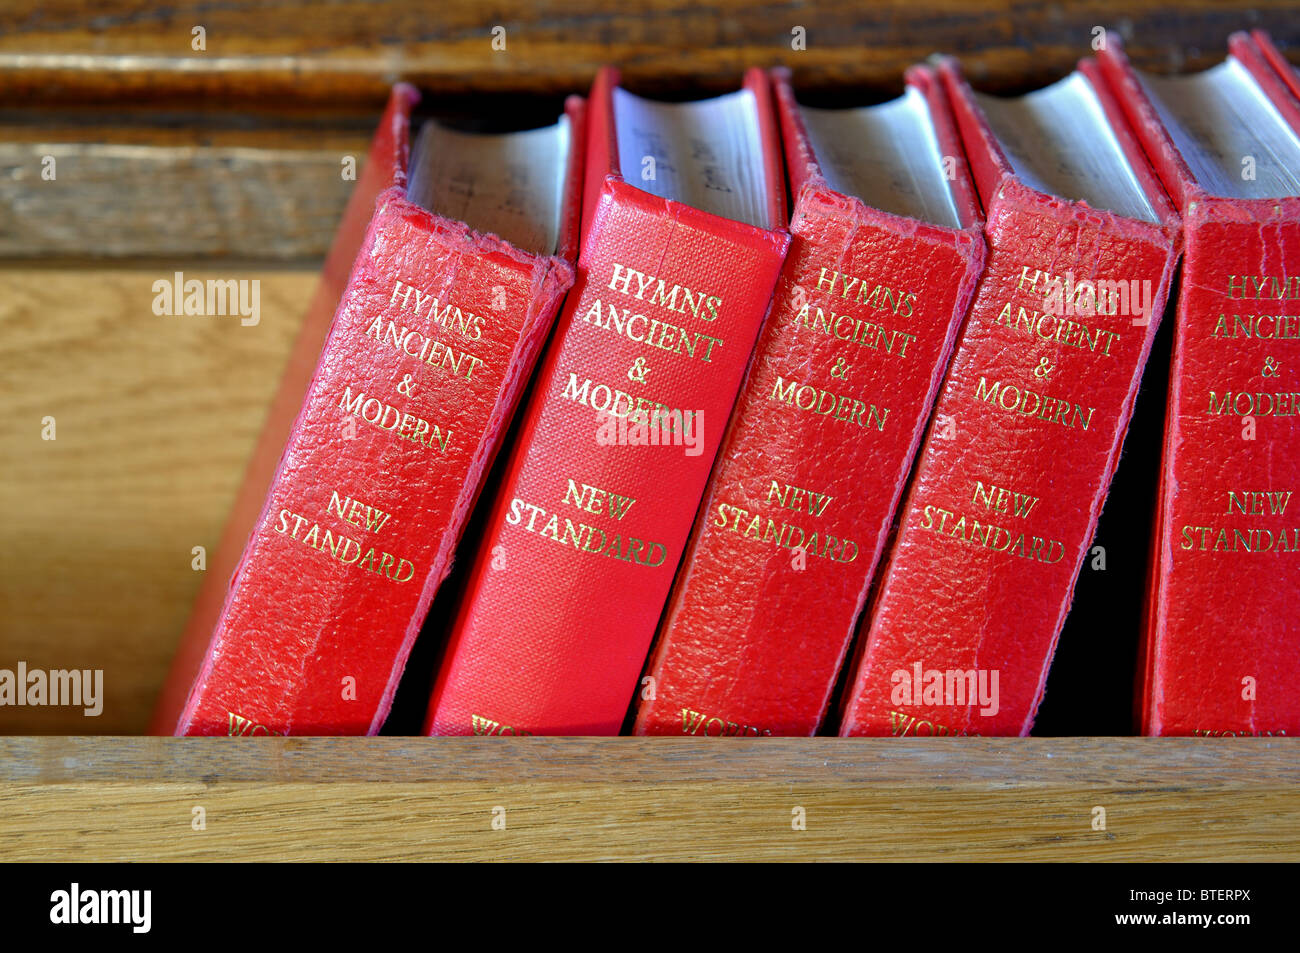 Hymns Ancient And Modern Stock Photos & Hymns Ancient And Modern